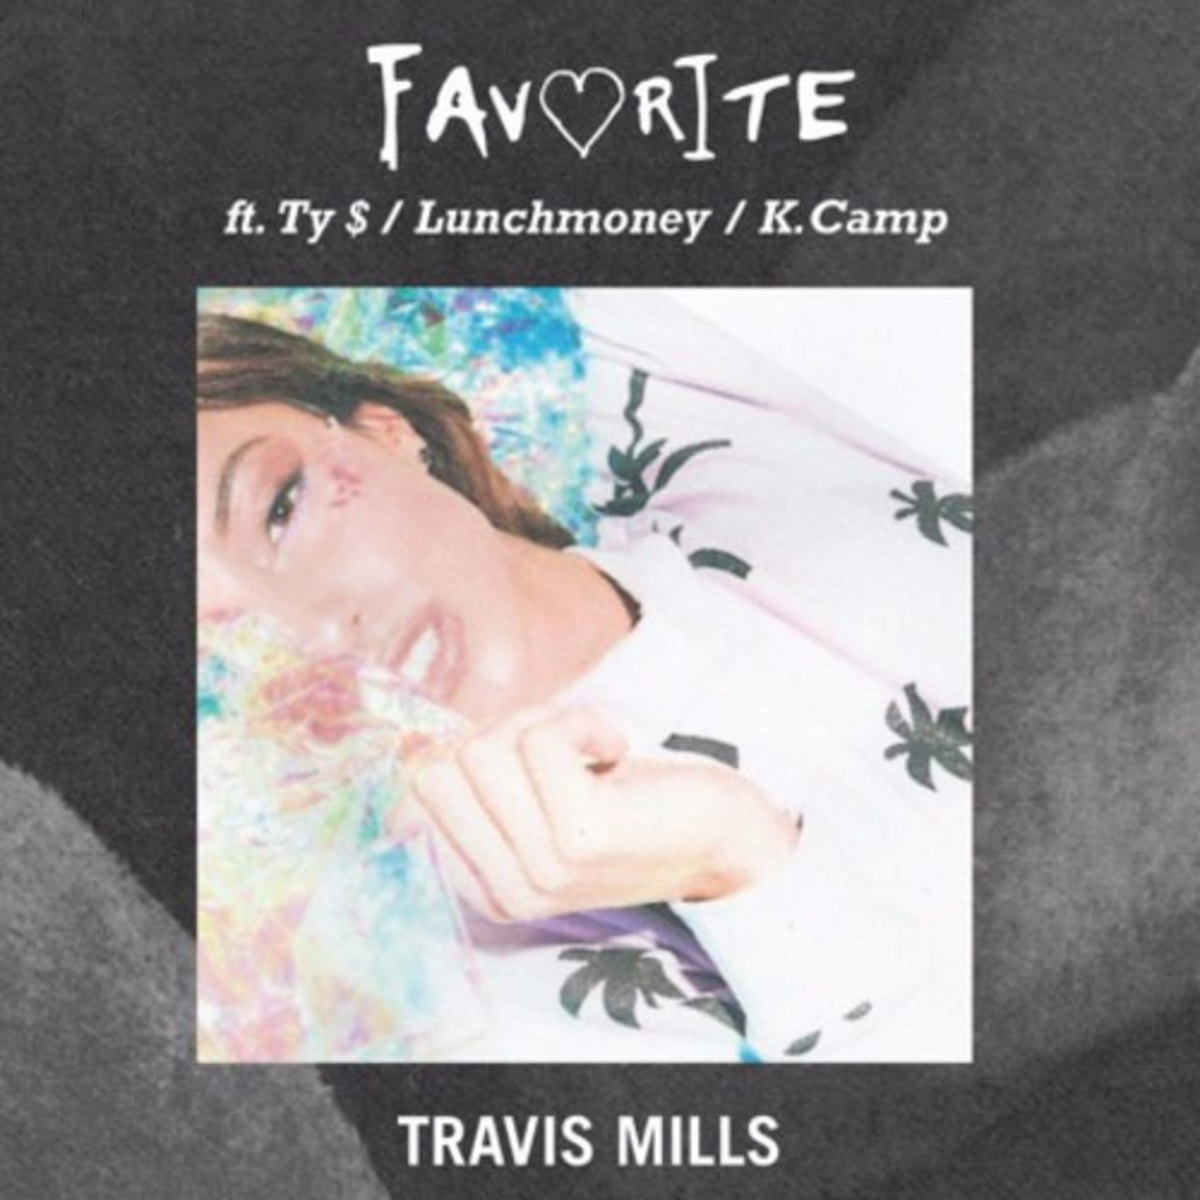 travis-mills-favorite.jpg